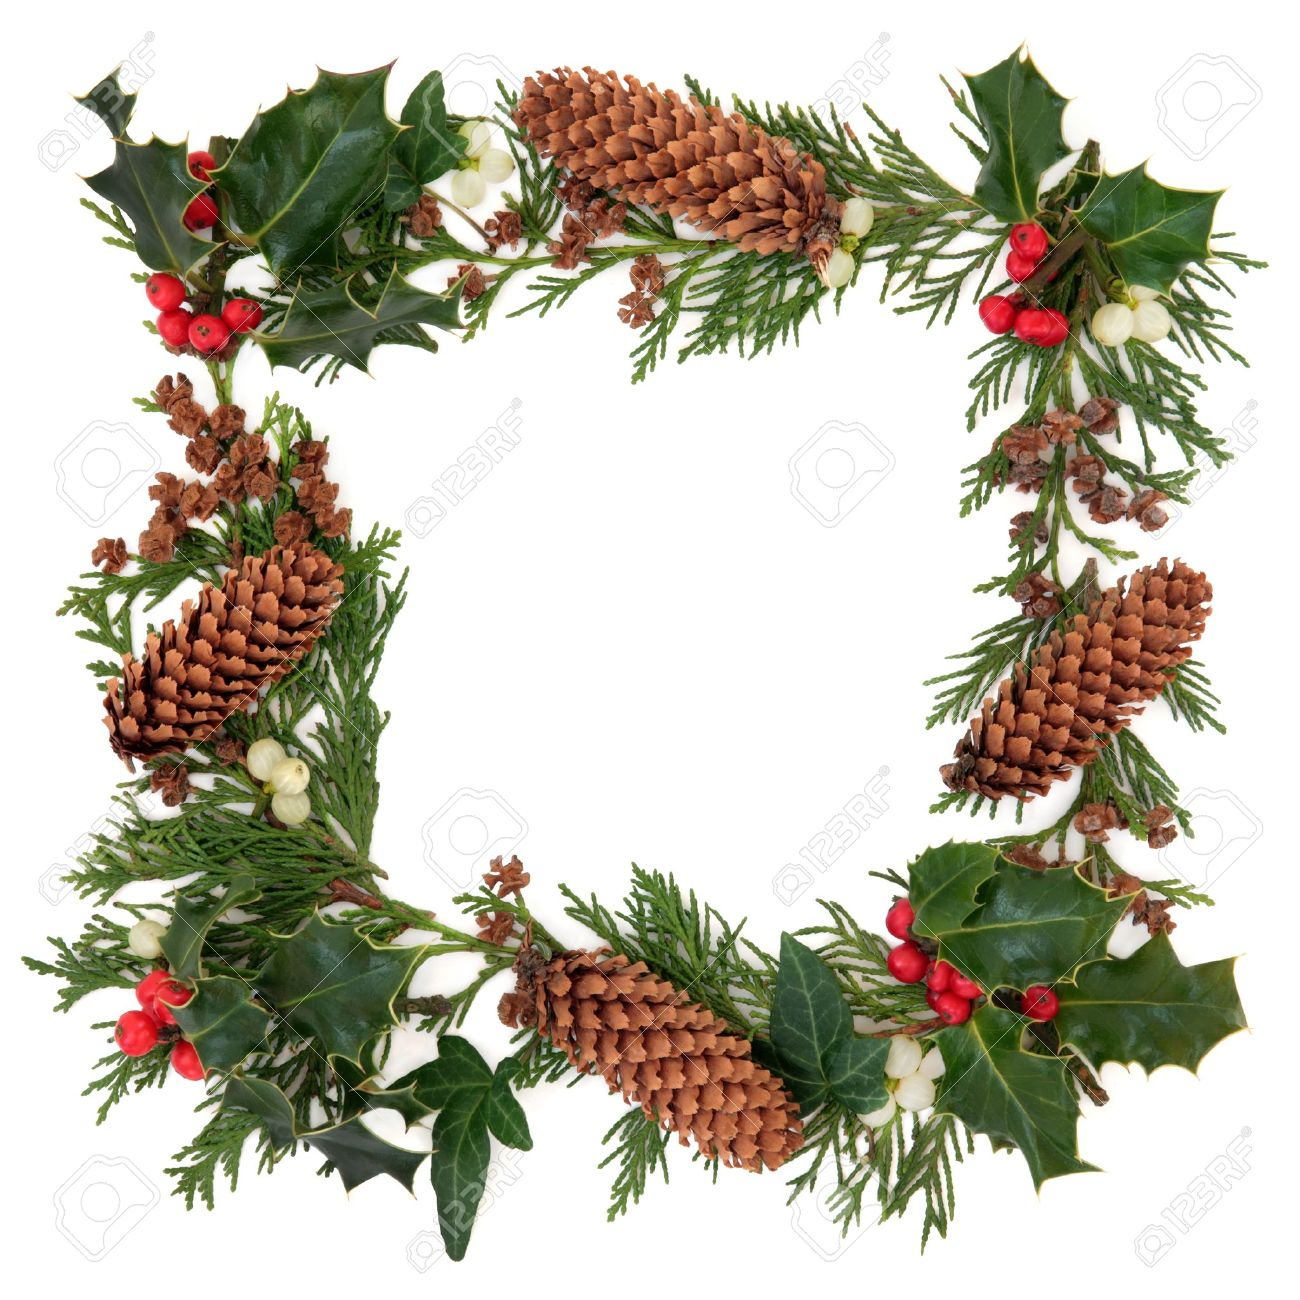 Winter and christmas decorative border of holly, ivy, mistletoe, cedar leaf sprigs and pine cones over white background Stock Photo - 15572742